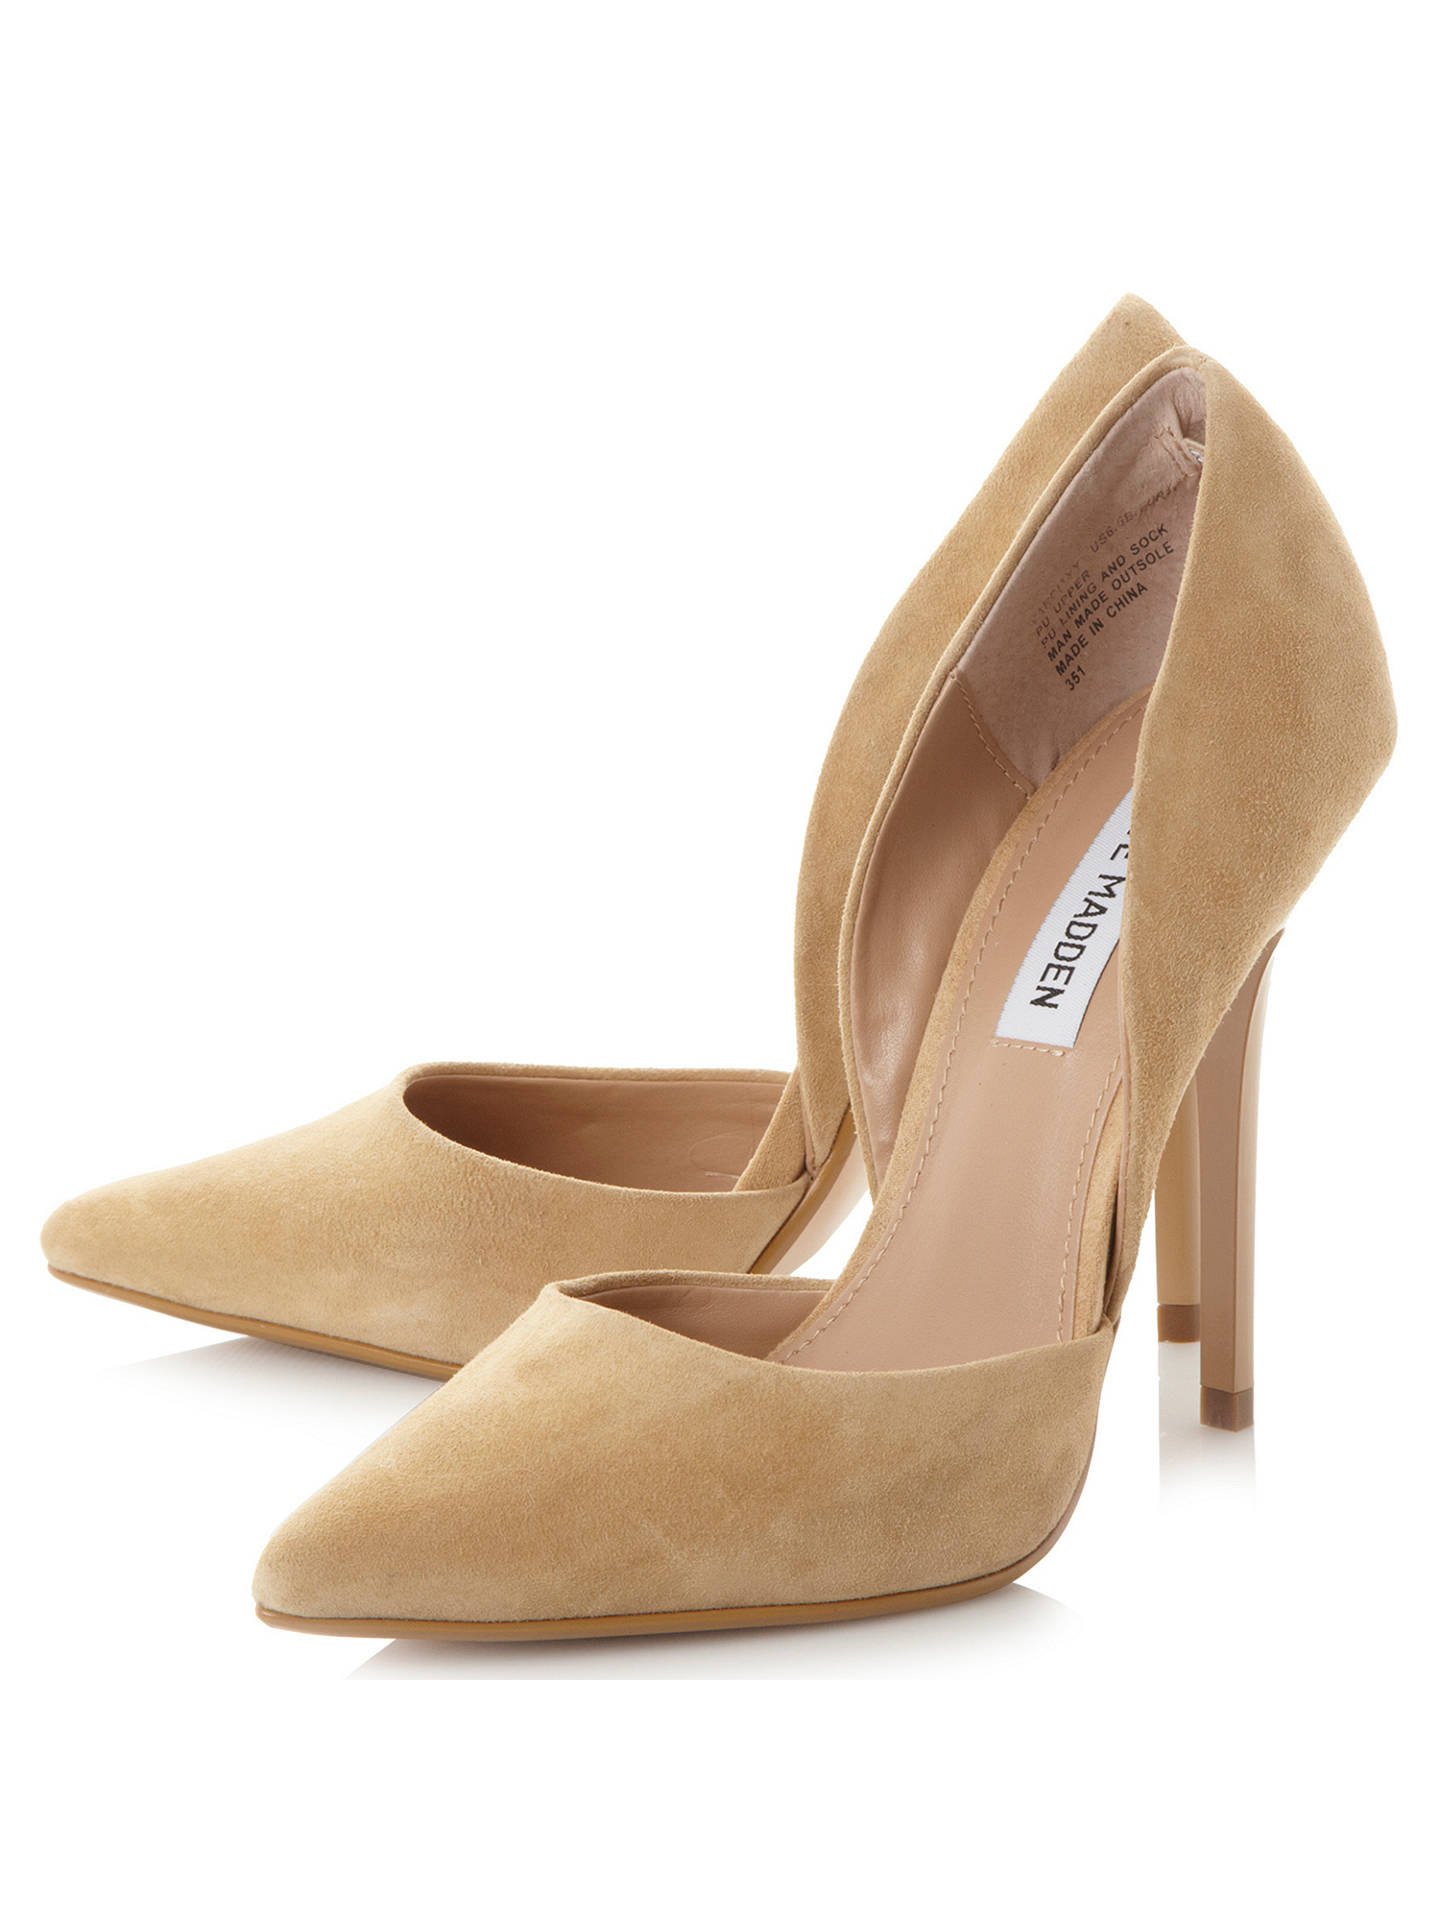 61ef86b9a6d ... Buy Steve Madden Varcityy Cut Out Upper Court Shoes